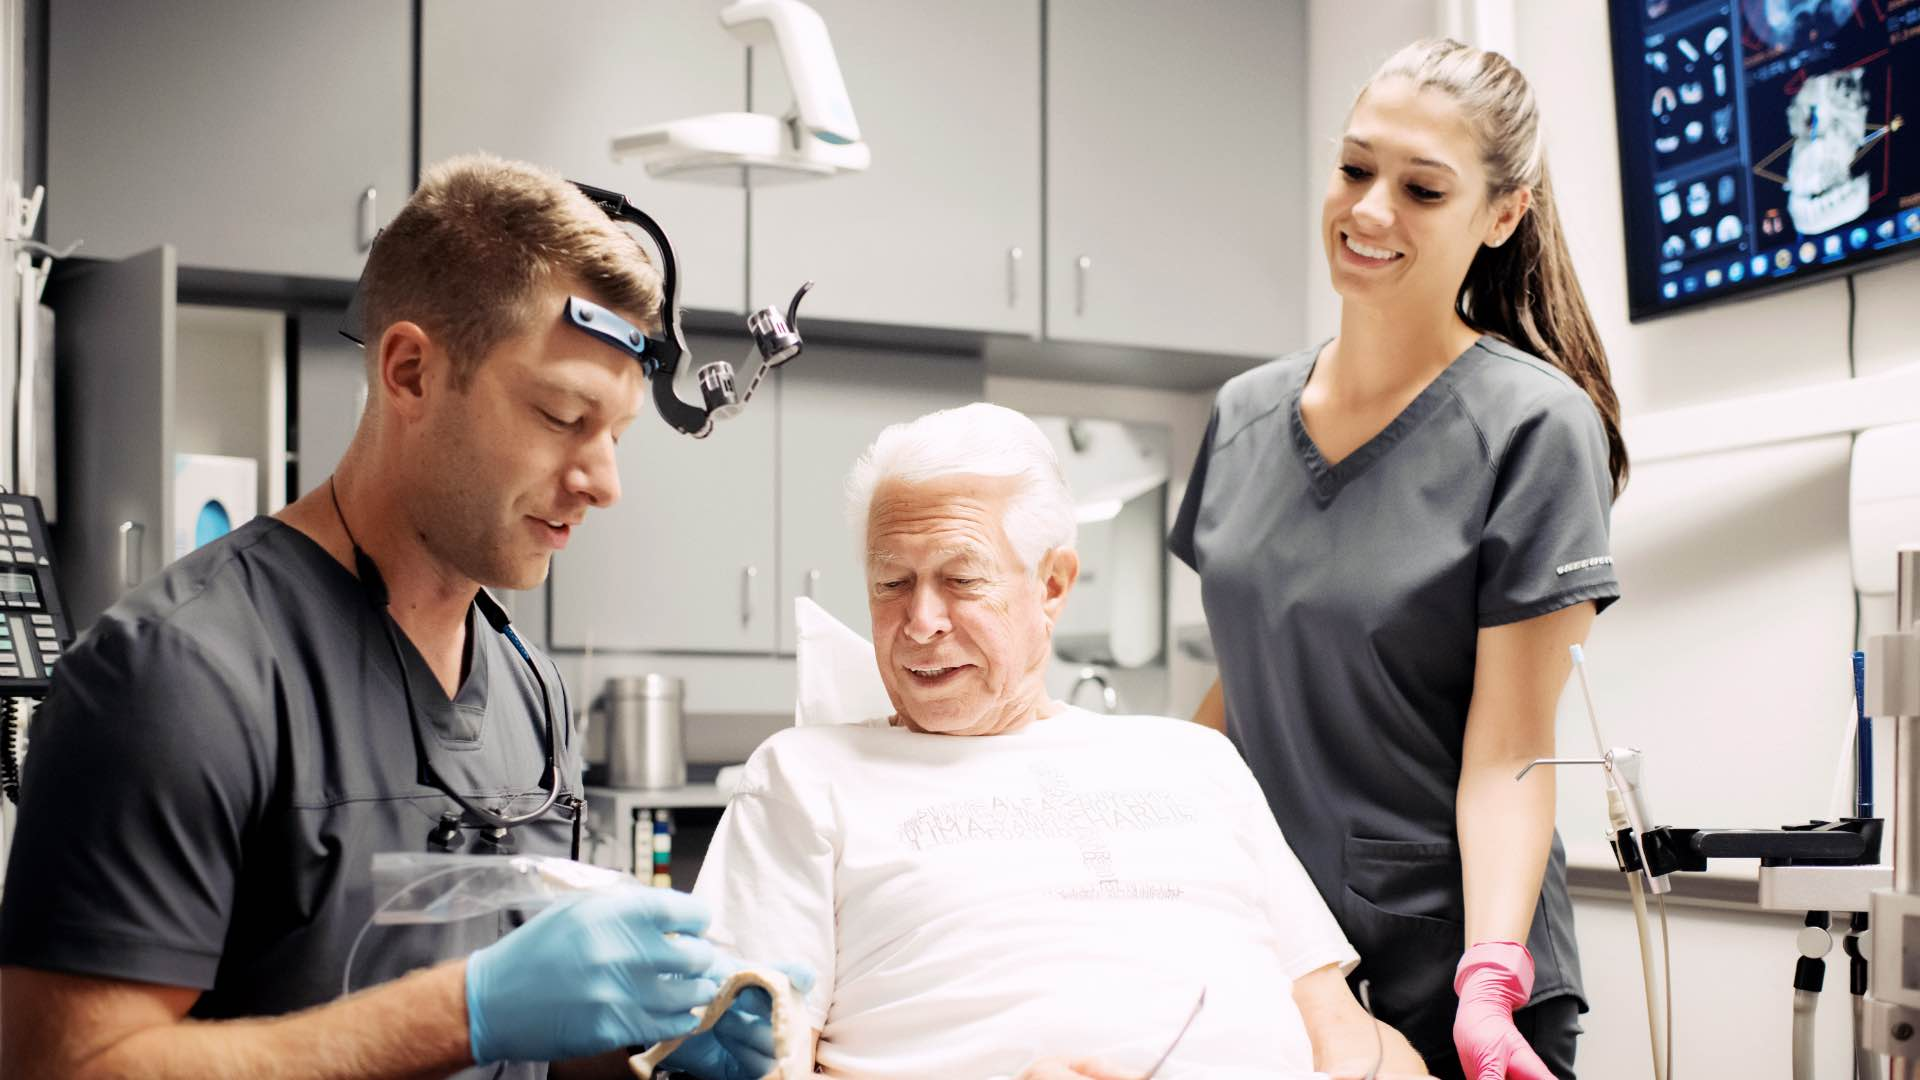 Photo of Dr. Mitchell showing a model to a patient